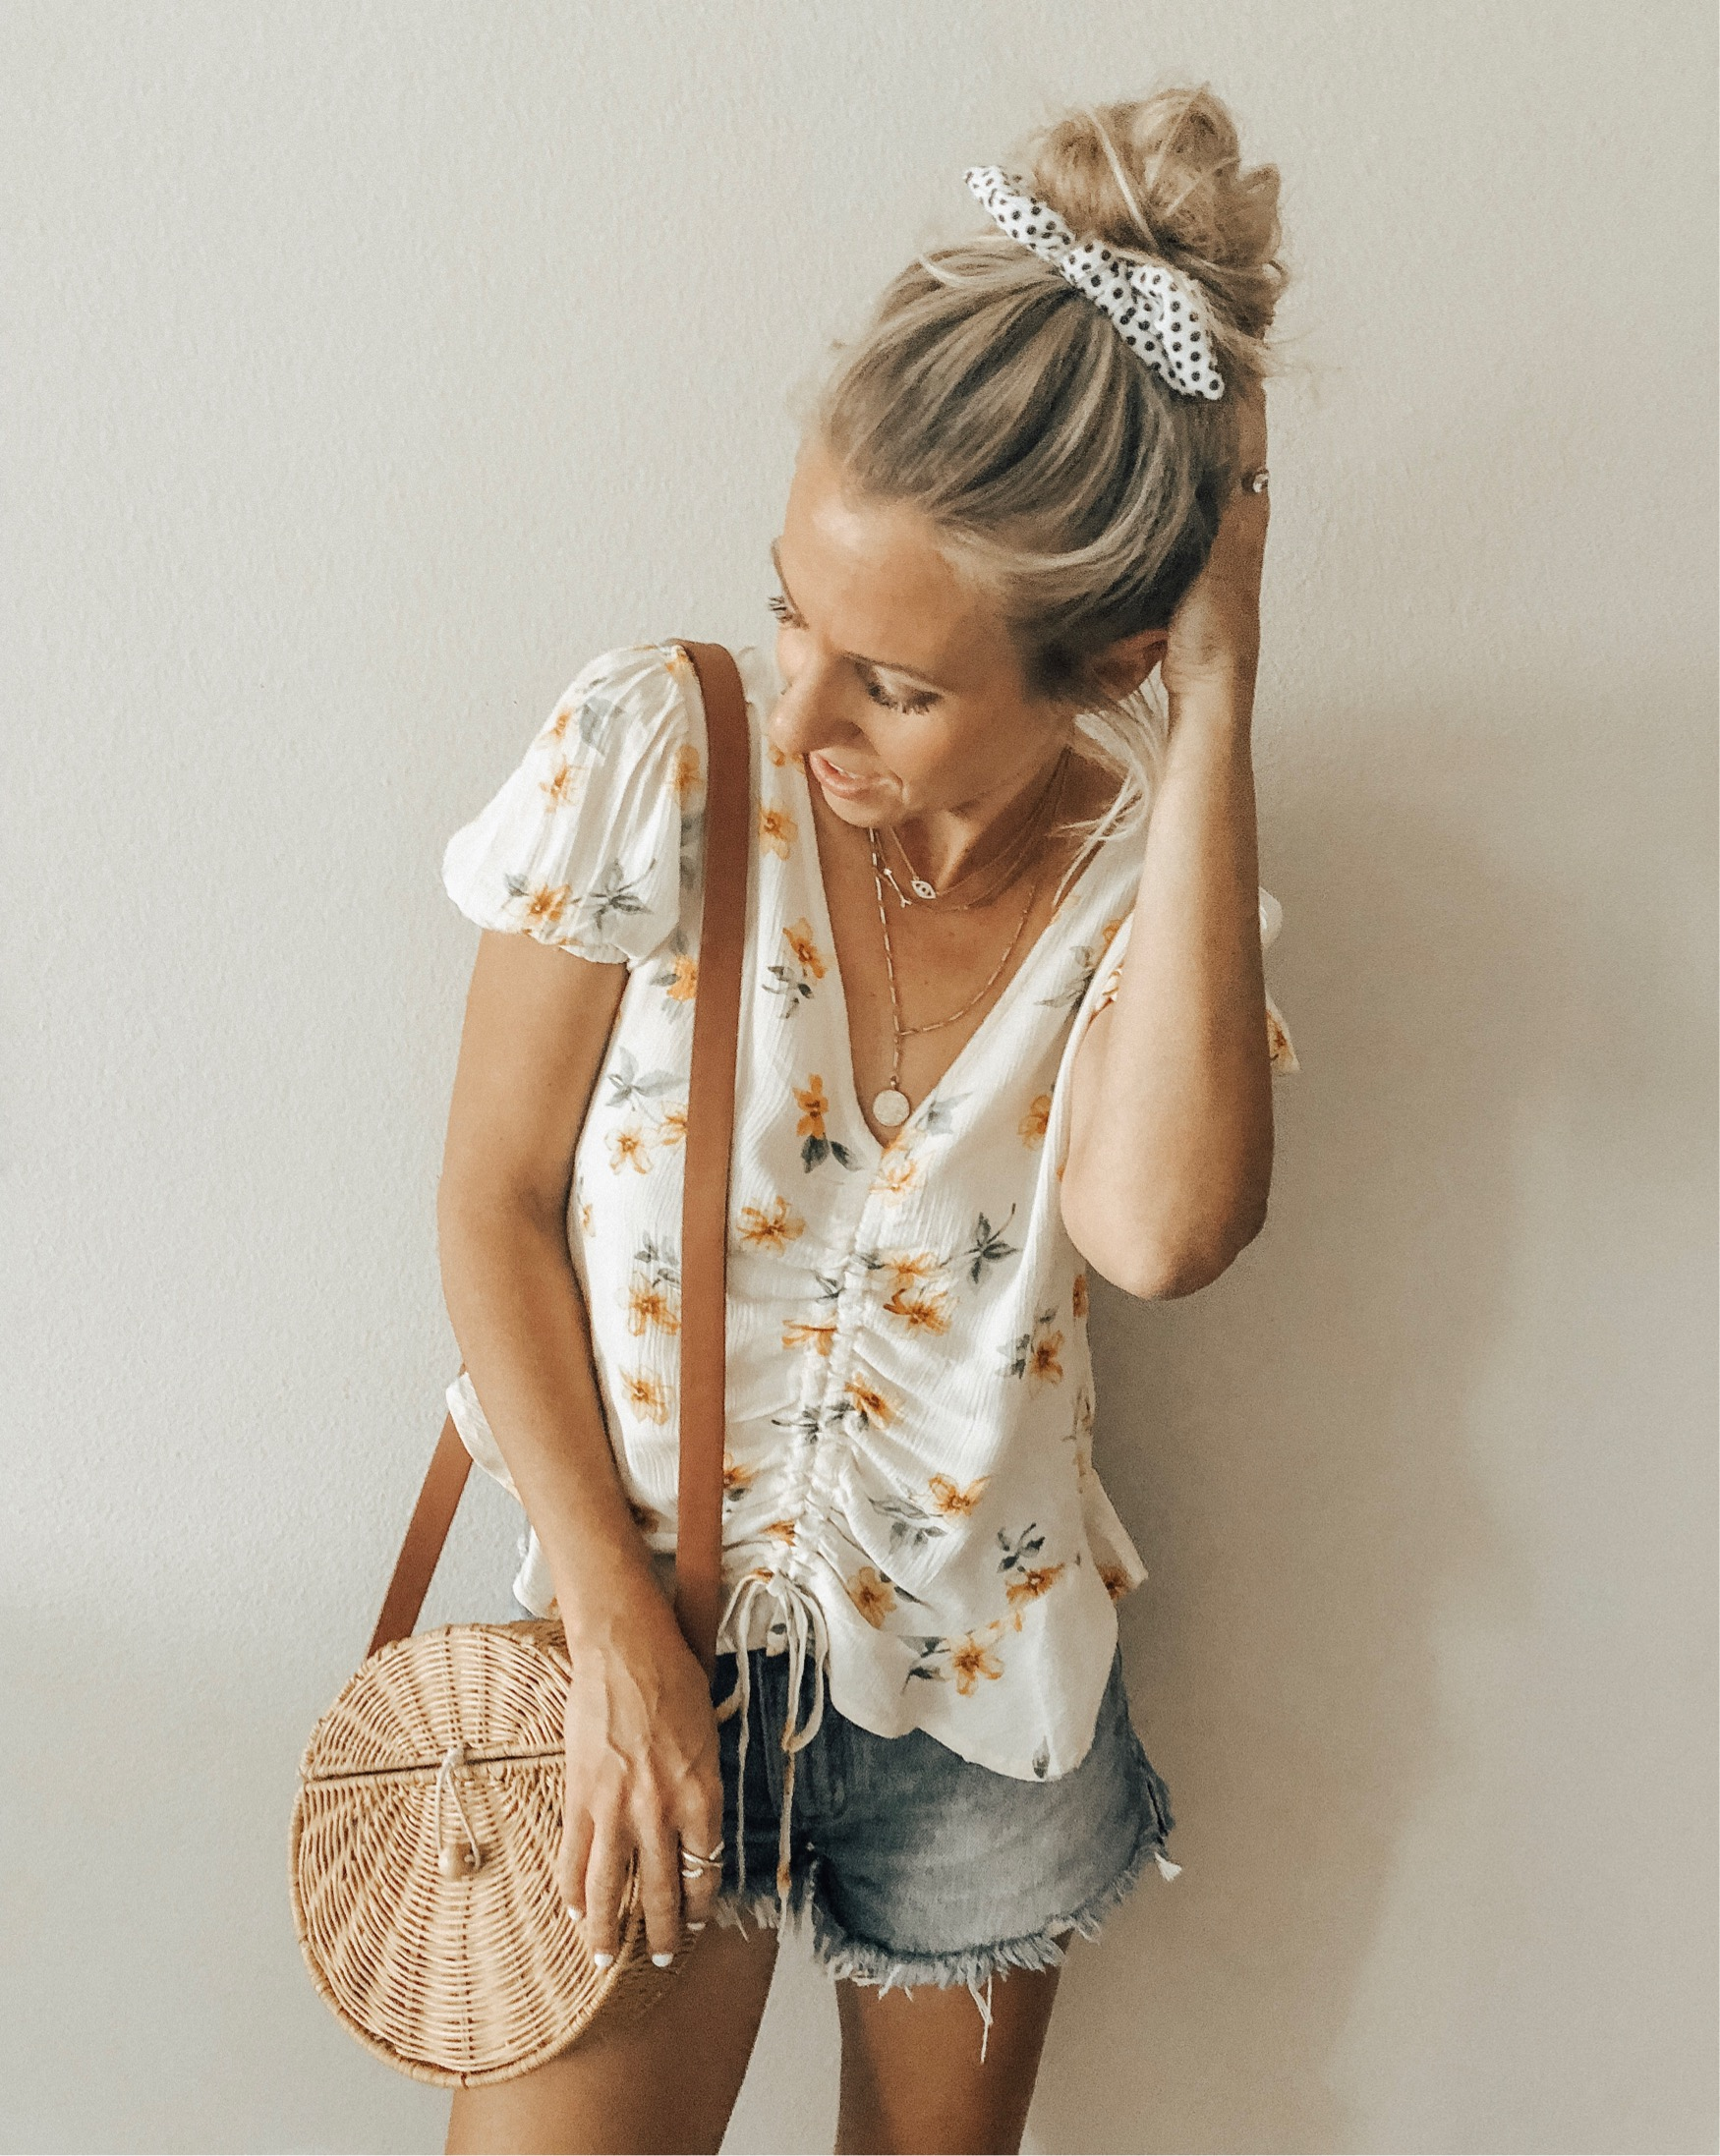 3 HAIR TRENDS TO WEAR NOW + $750 NORDSTROM GIFT CARD GIVEAWAY- Jaclyn De Leon Style + HAIR STYLE + SUMMER HAIR + HEAD SCARF + HEADBAND + SCRUNCHIE + HAIR ACCESSORIES + BANDANA + HEAD WRAP + STYLING LONG HAIR + PONY TAIL